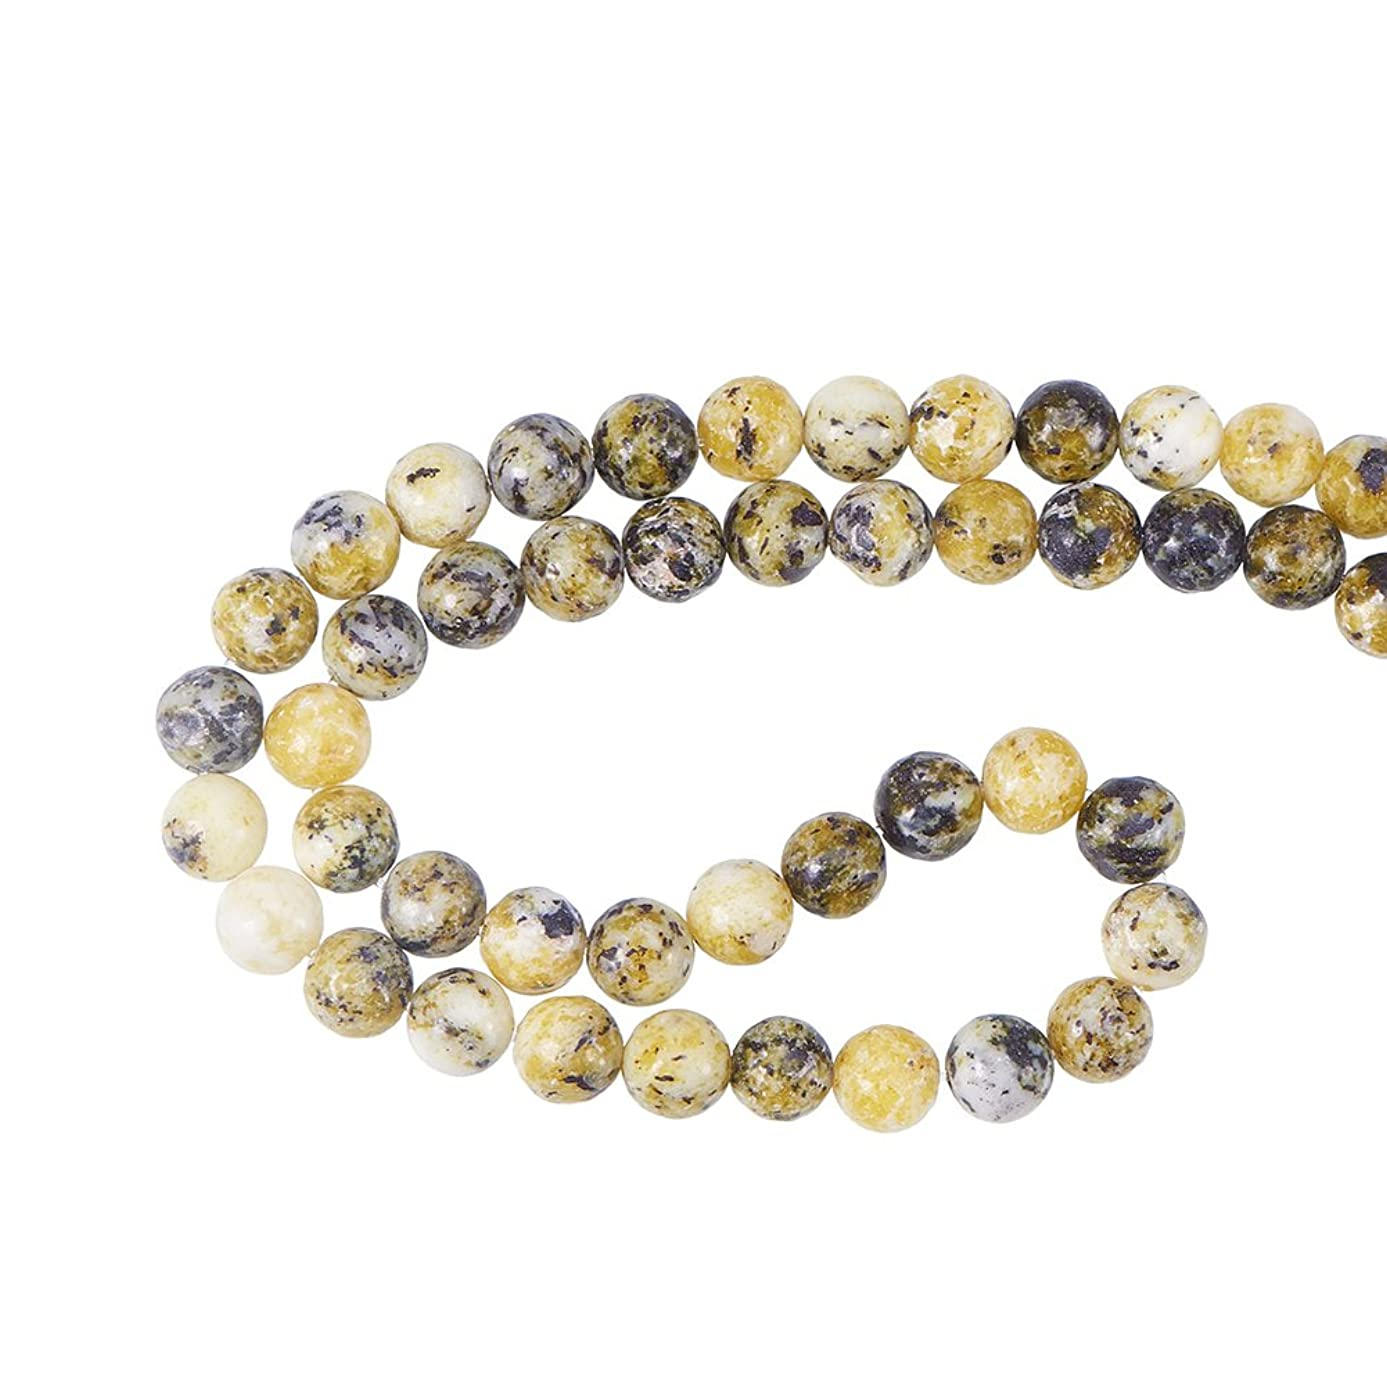 NBEADS 5 Strands Natural Yellow Turqouise Beads, 8mm Round Smooth Loose Beads for Jewelry Making, 47 PCS Per Strand